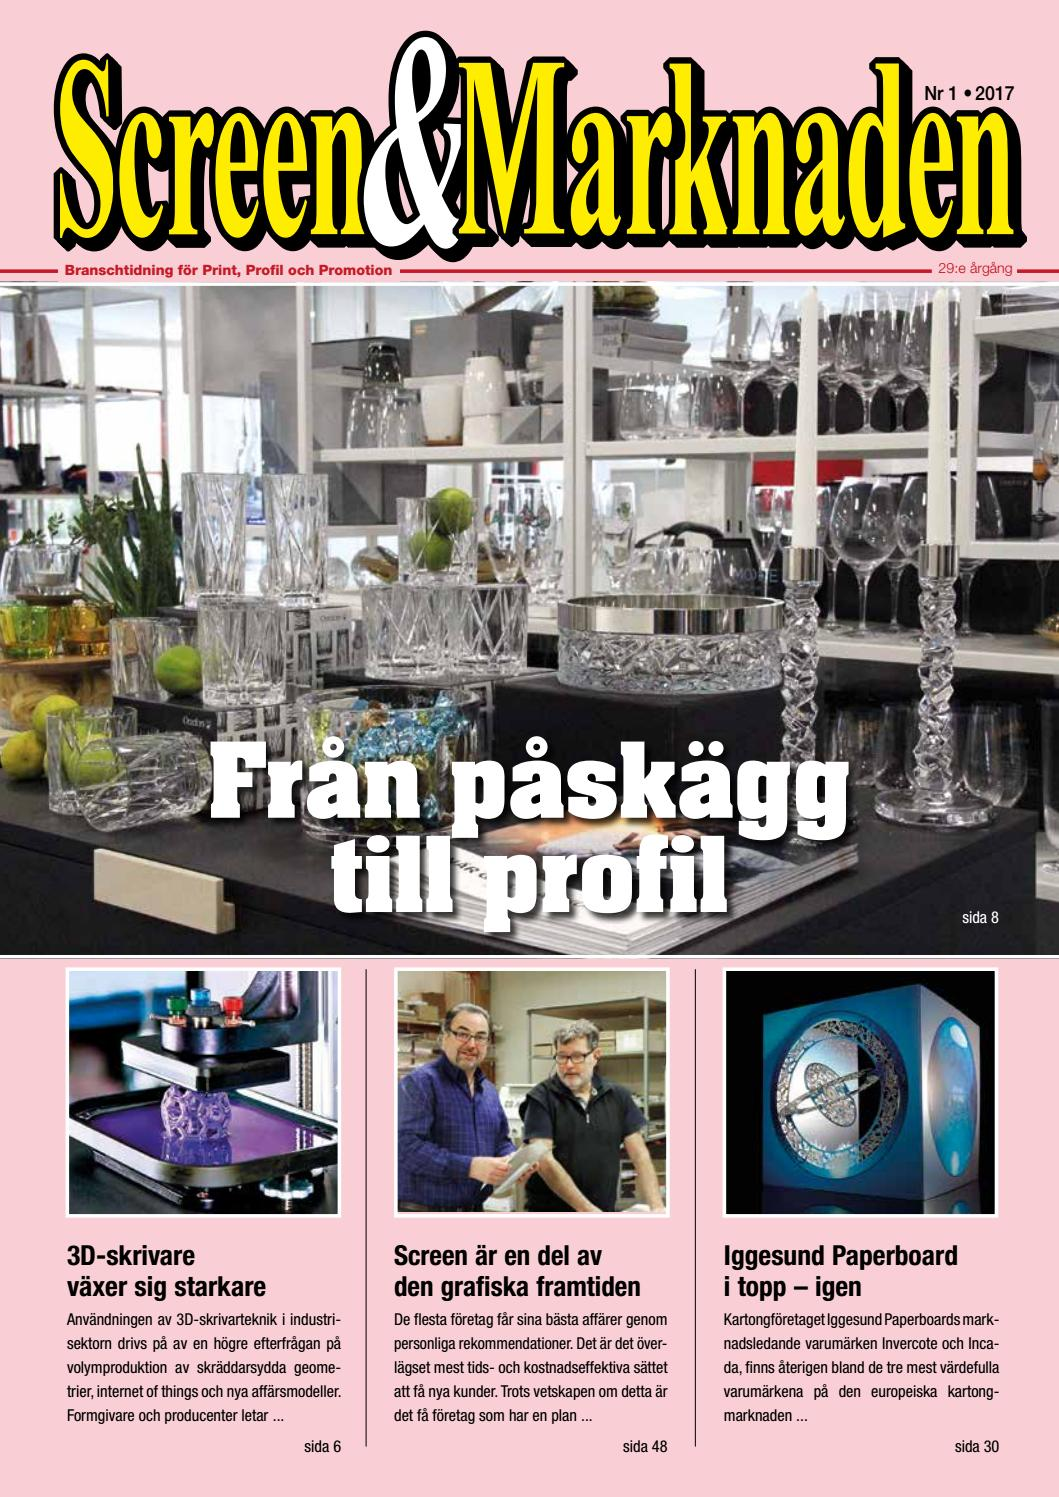 3b02e466d7fa Screenmarknaden 1 2017 by Martin Eriksson - issuu